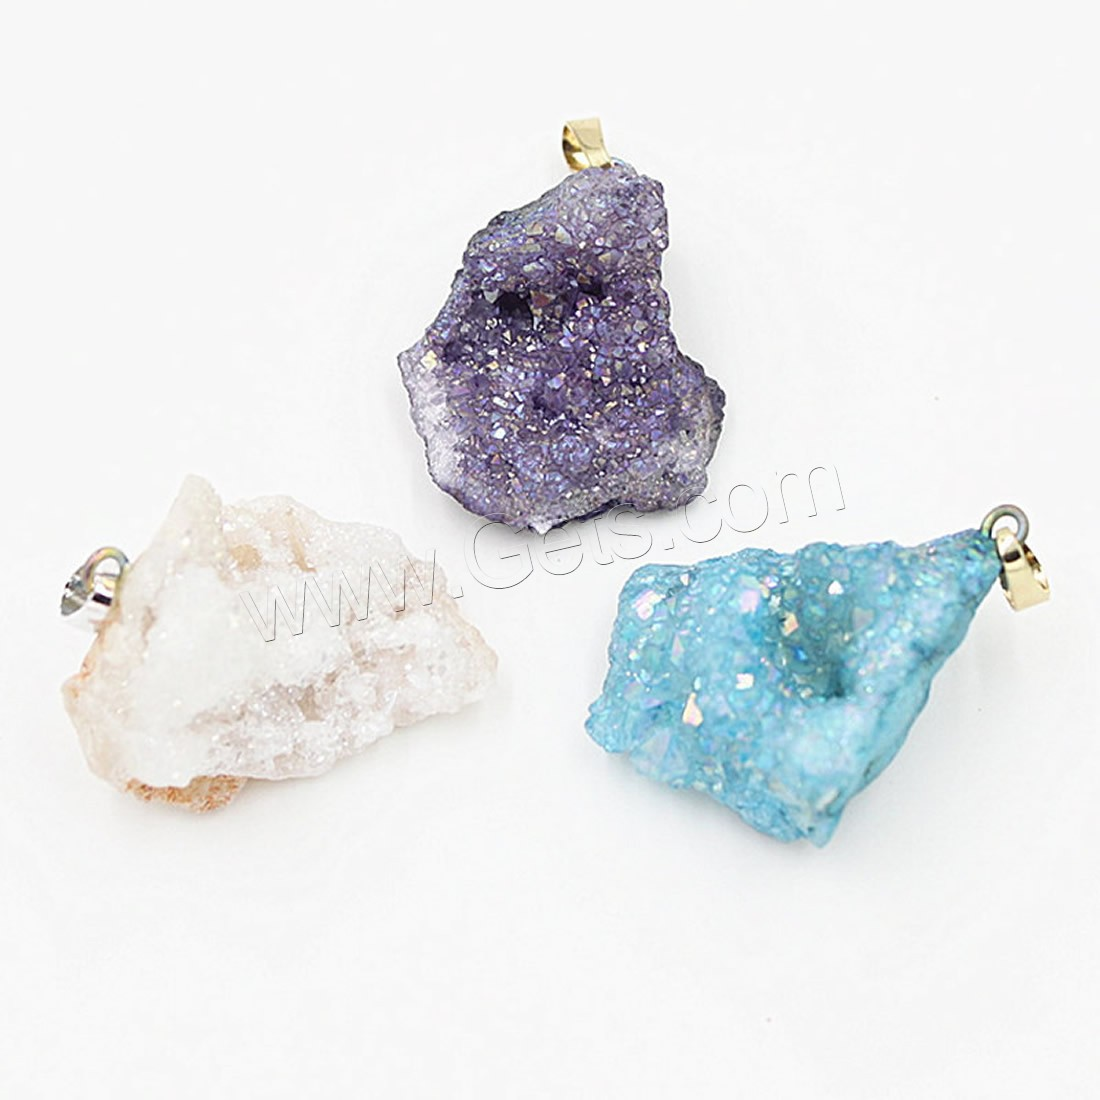 Ice quartz natural crystal agate onyx pendants brass druzy drusy druse geode druza druzi style mixed colors 1254080